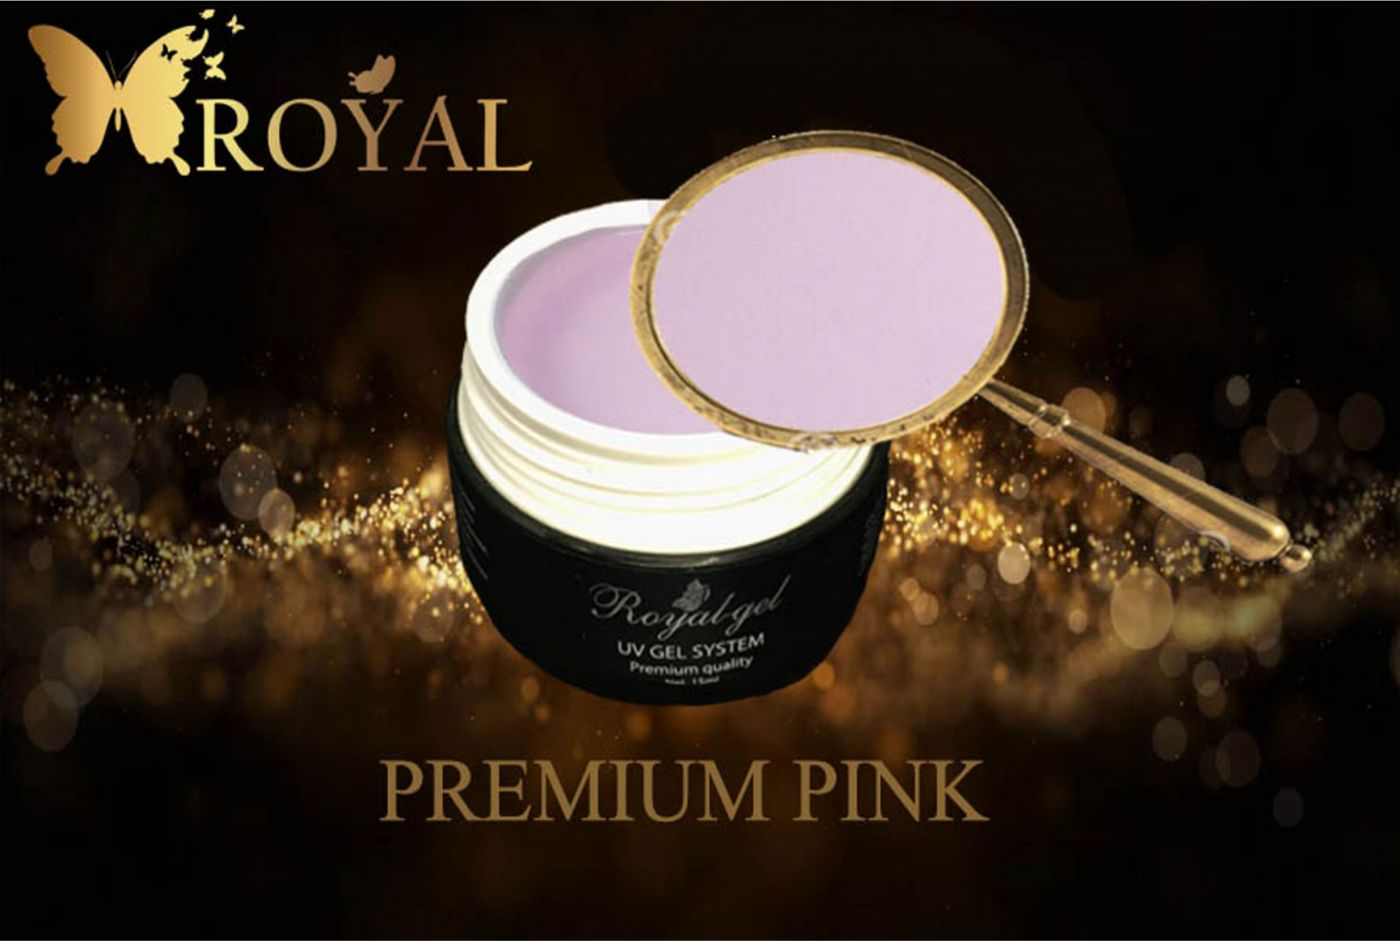 PREMIUM PINK ROYAL GEL